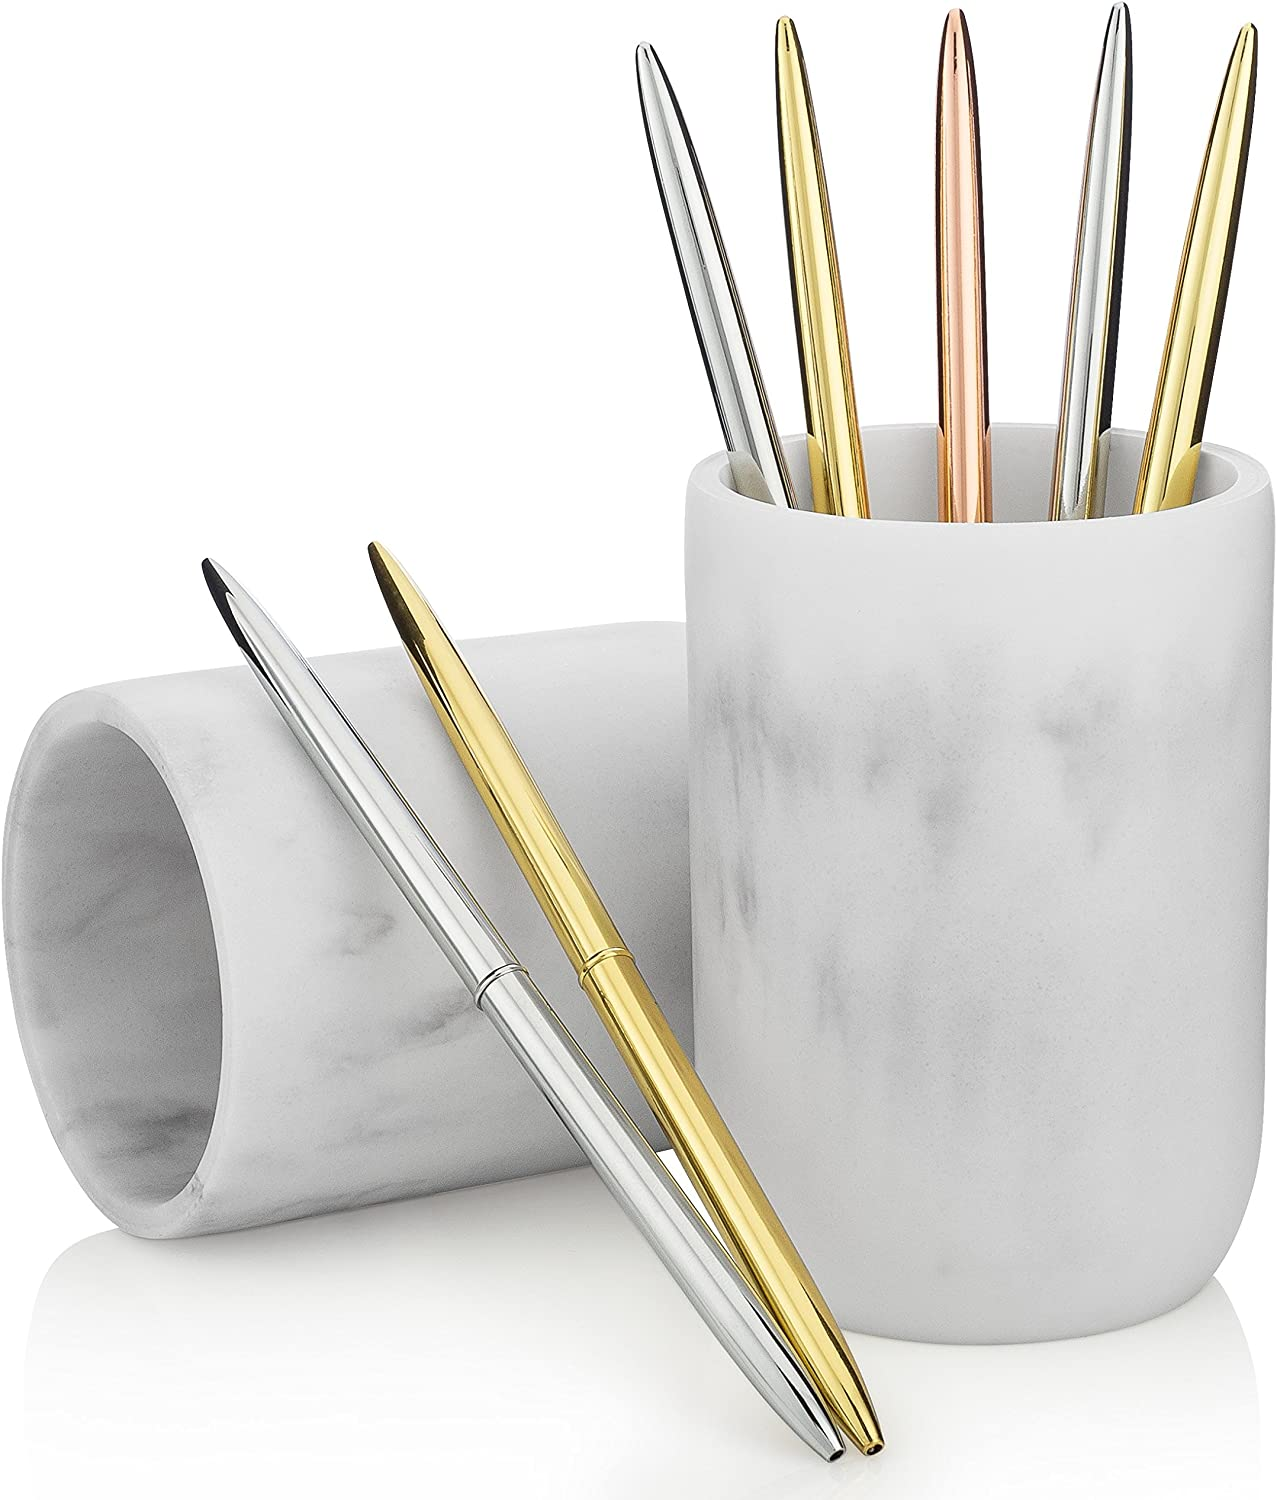 Essentra Home Blanc Collection White Bathroom Tumbler Cup For Vanity Countertops Also Great As Pencil Pen Holder And Makeup Brush Holder Home Kitchen